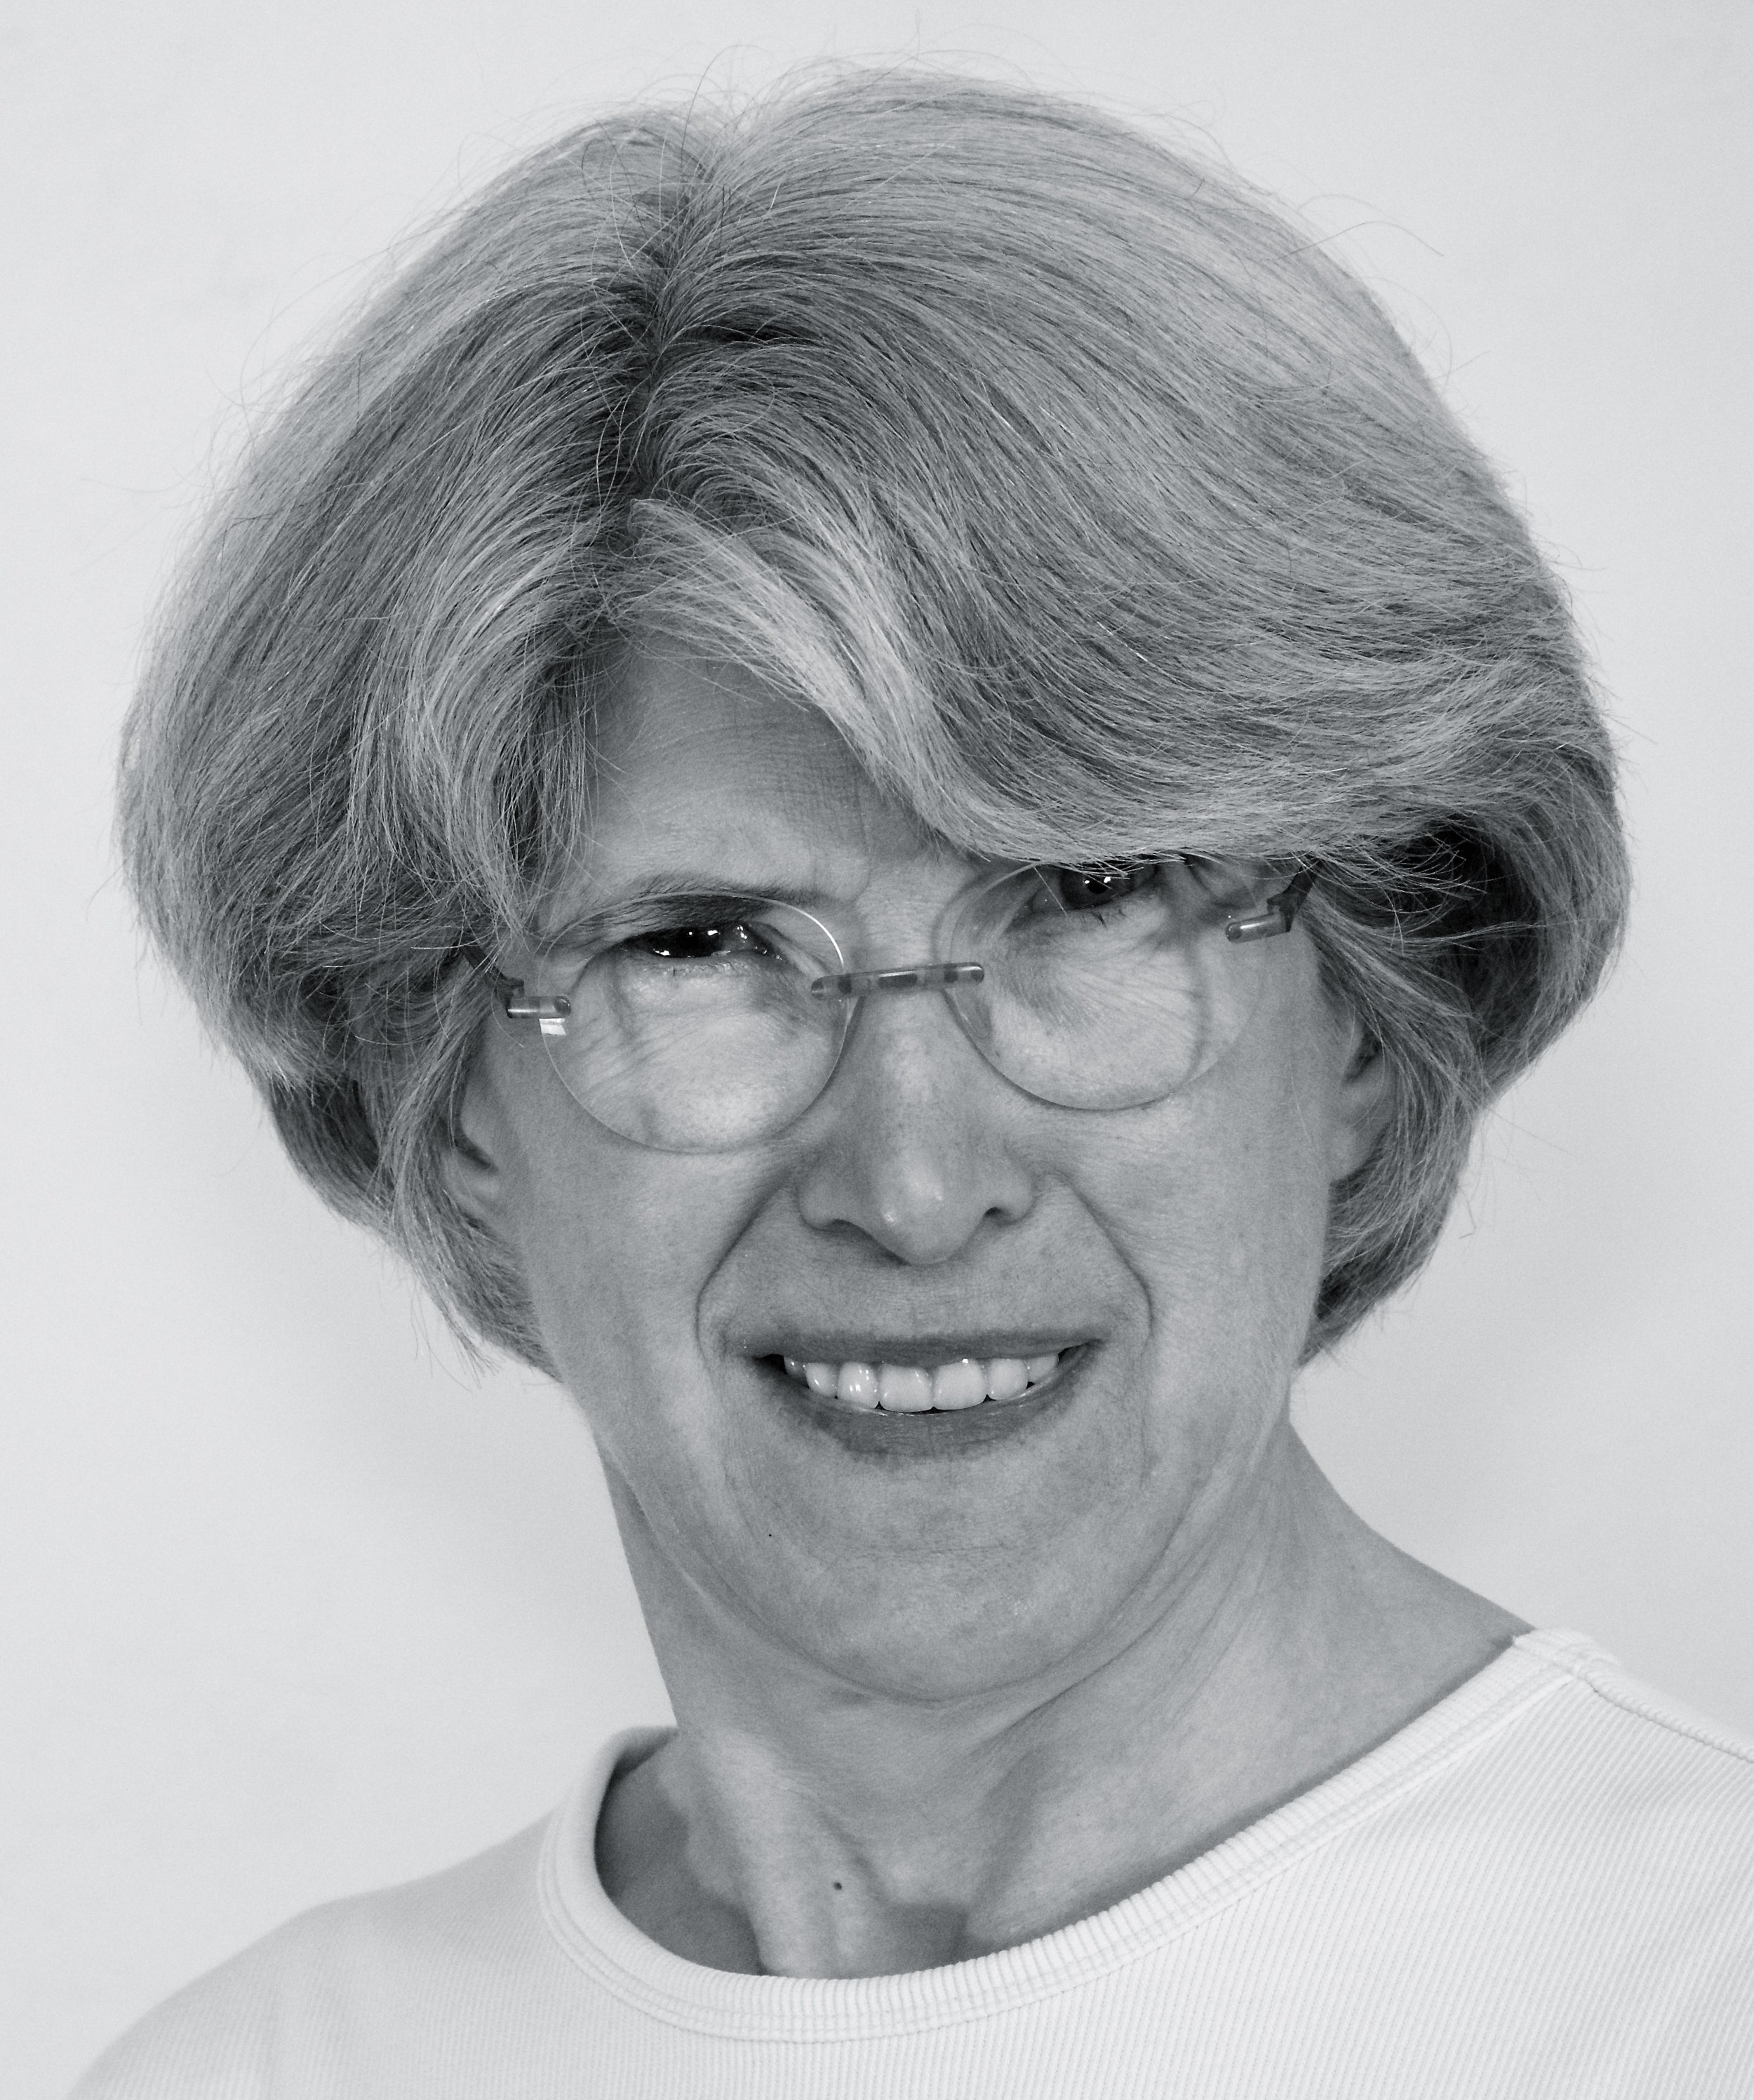 Rose Costello - Rose has been teaching private and group piano since 1997 in both traditional and Suzuki methods and holds a masters degree in Education from National-Louis University in Evanston, IL. She formerly taught traditional and Montessori elementary education around the Midwest and is certified and experienced in both Suzuki piano and special needs including many brain, focus and coordination issues. Rose is past Chair and current member of the National Federation of Music Clubs' Wisconsin chapter, past Treasurer and committee Chair of the Northeast Wisconsin Piano Teachers' Forum and a member of the Suzuki Association of the Americas.